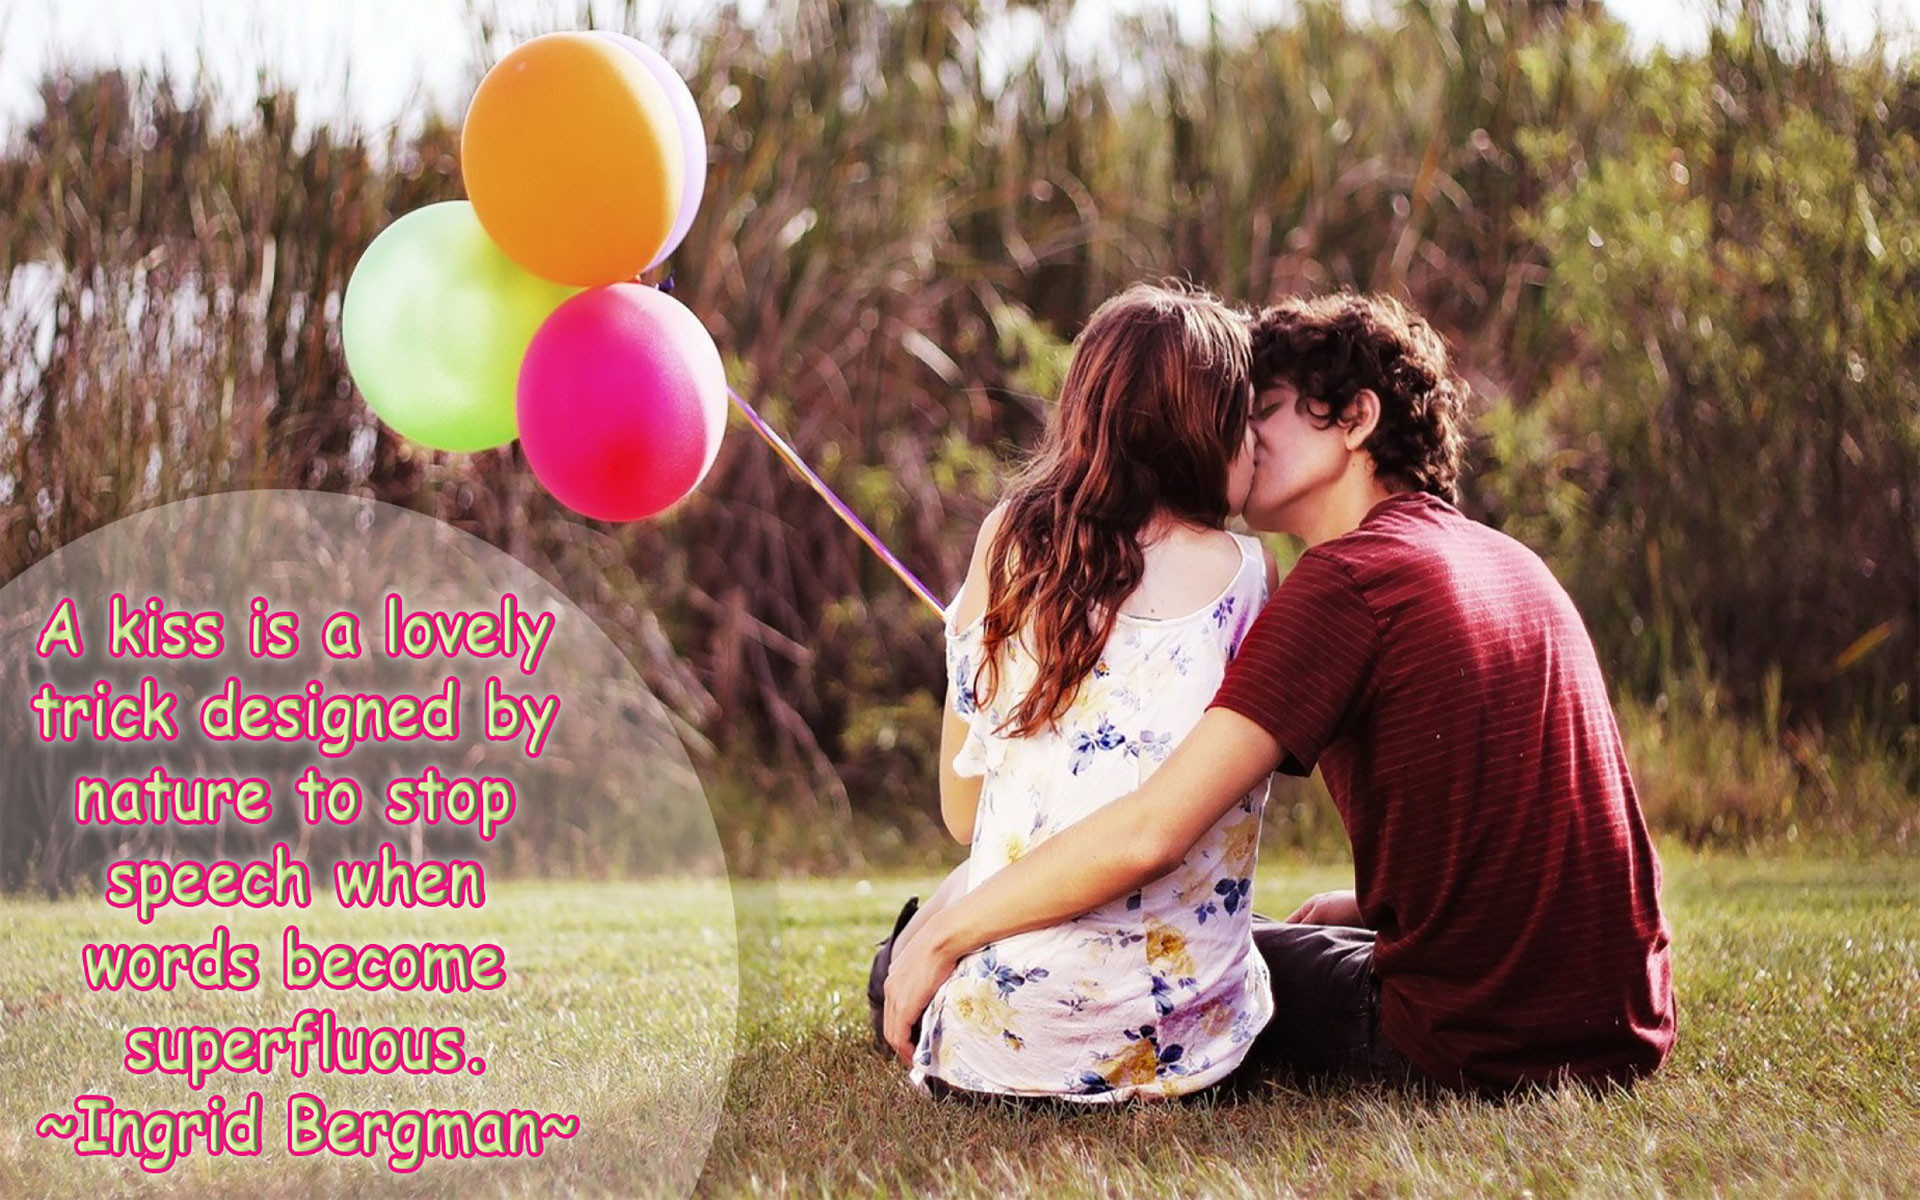 Cute Couple Wallpapers With Quotes Mobile   Data Src - Romantic Wallpapers Of Couples With Quotes - HD Wallpaper